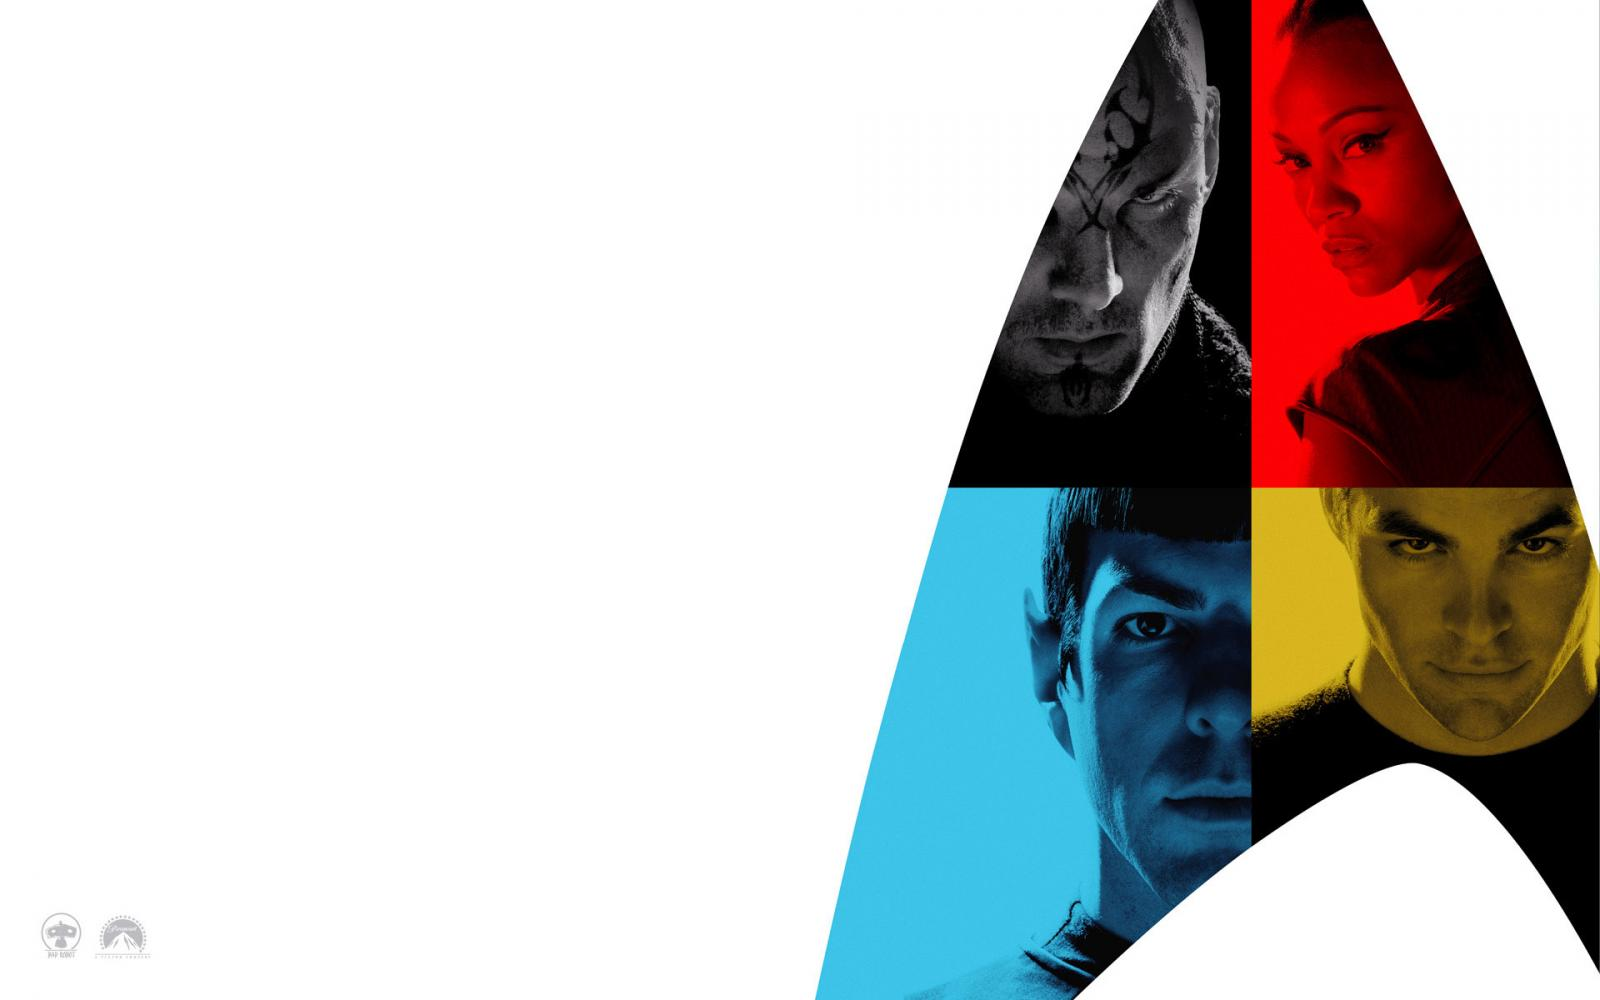 Wallpaper Star Trek Quatuor 1